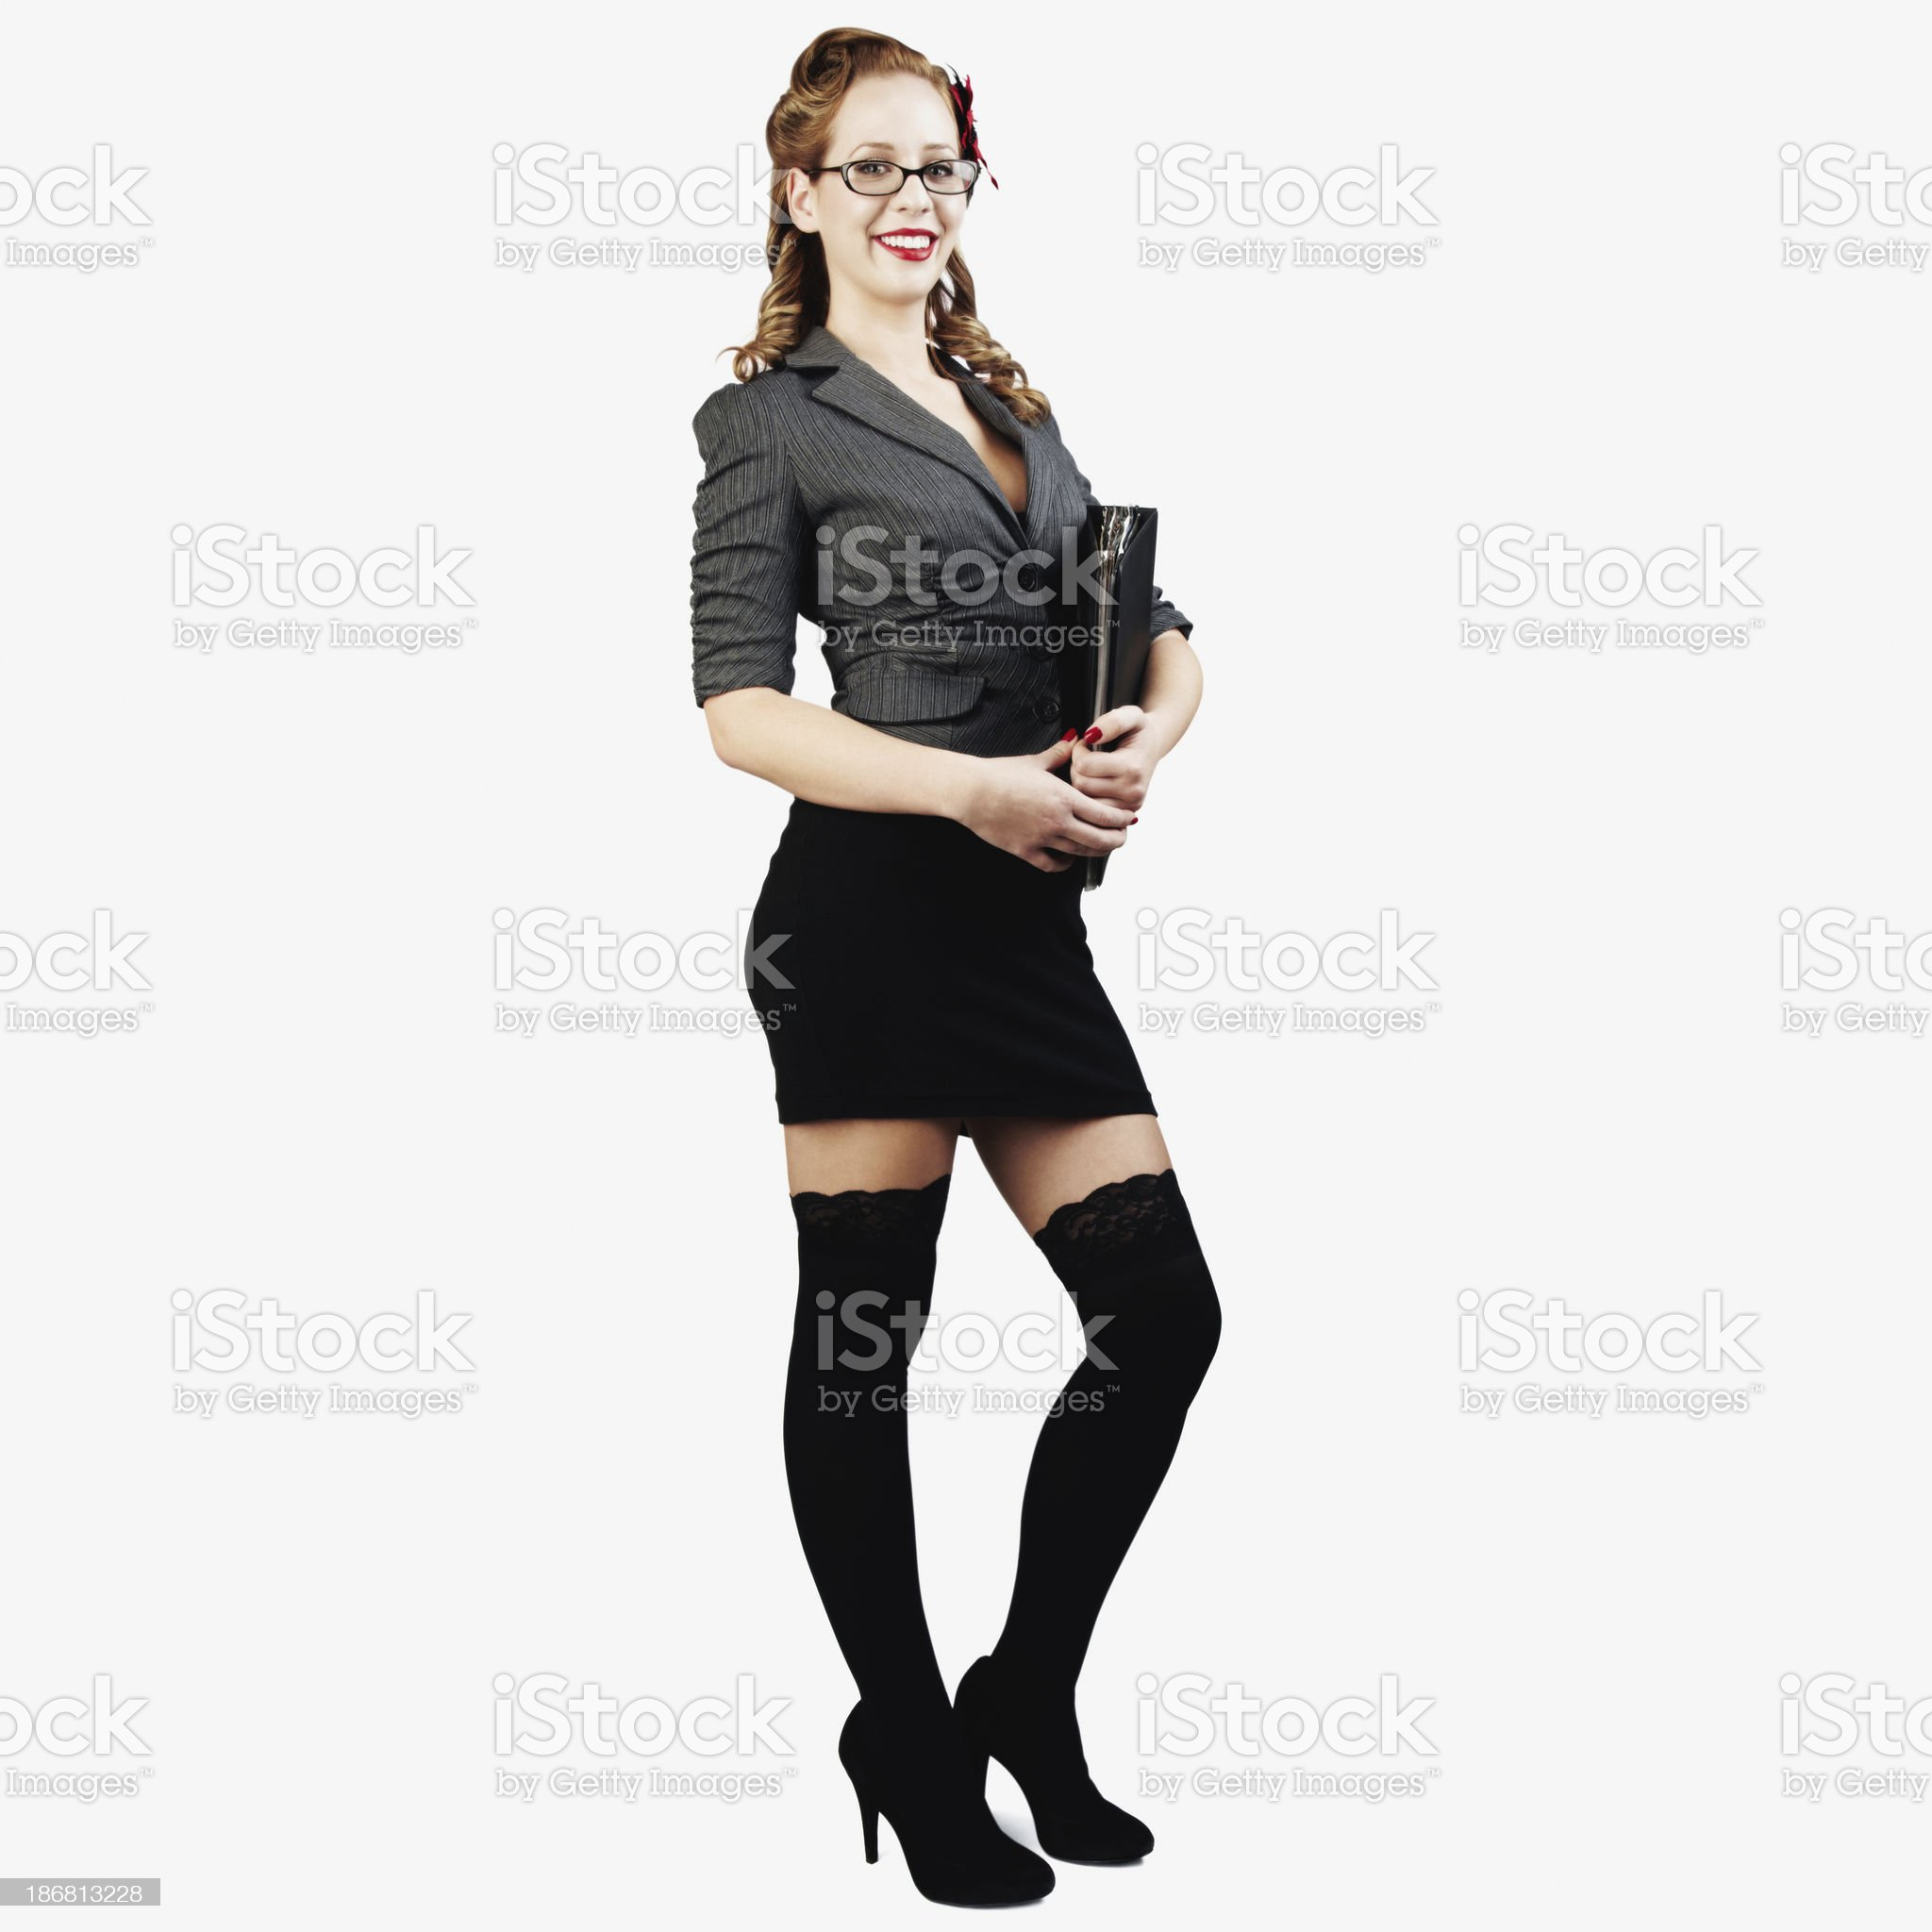 Sexy Female College Student Holding Notebook and Smiling. Isolated royalty-free stock photo